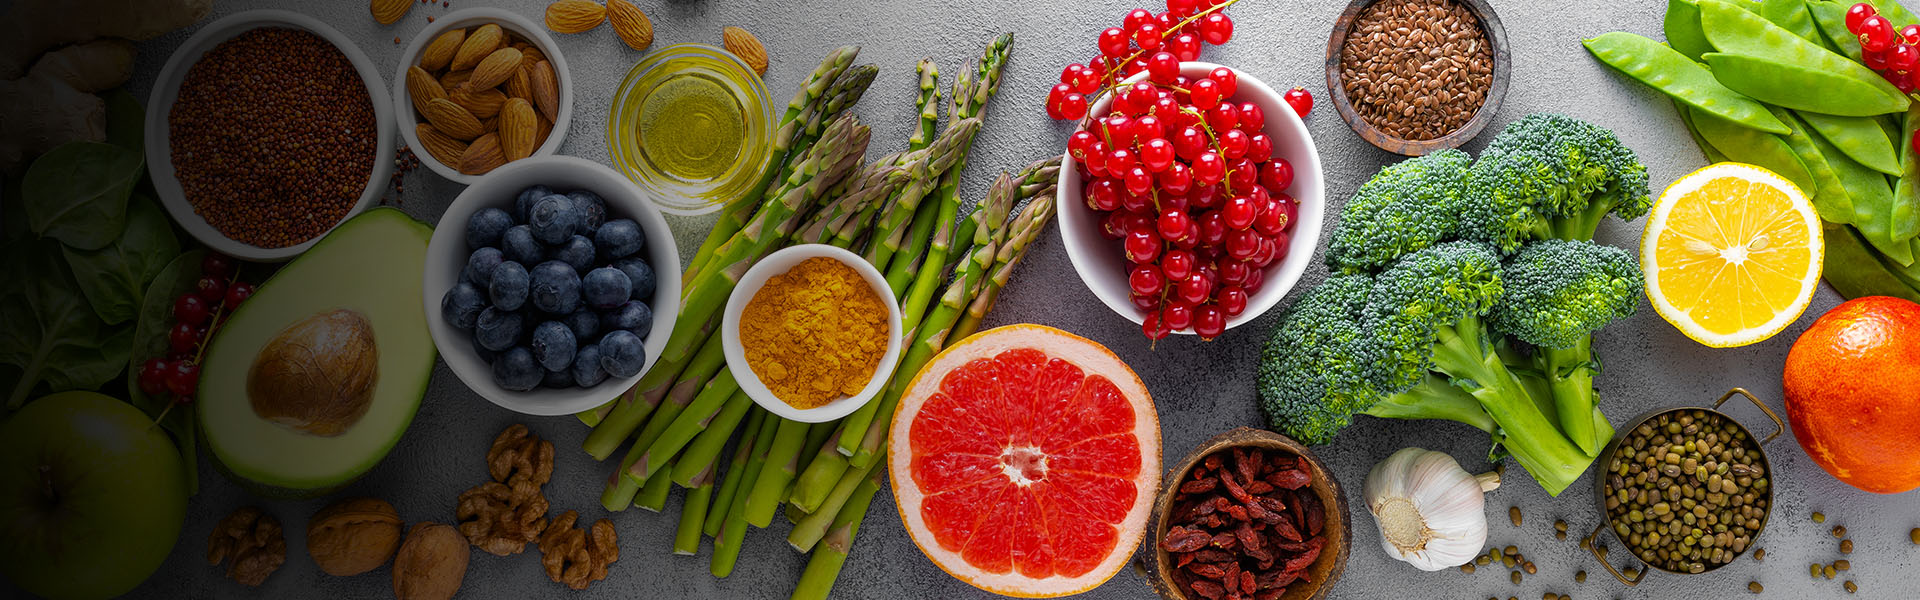 5 Healthy foods for Workout Energy